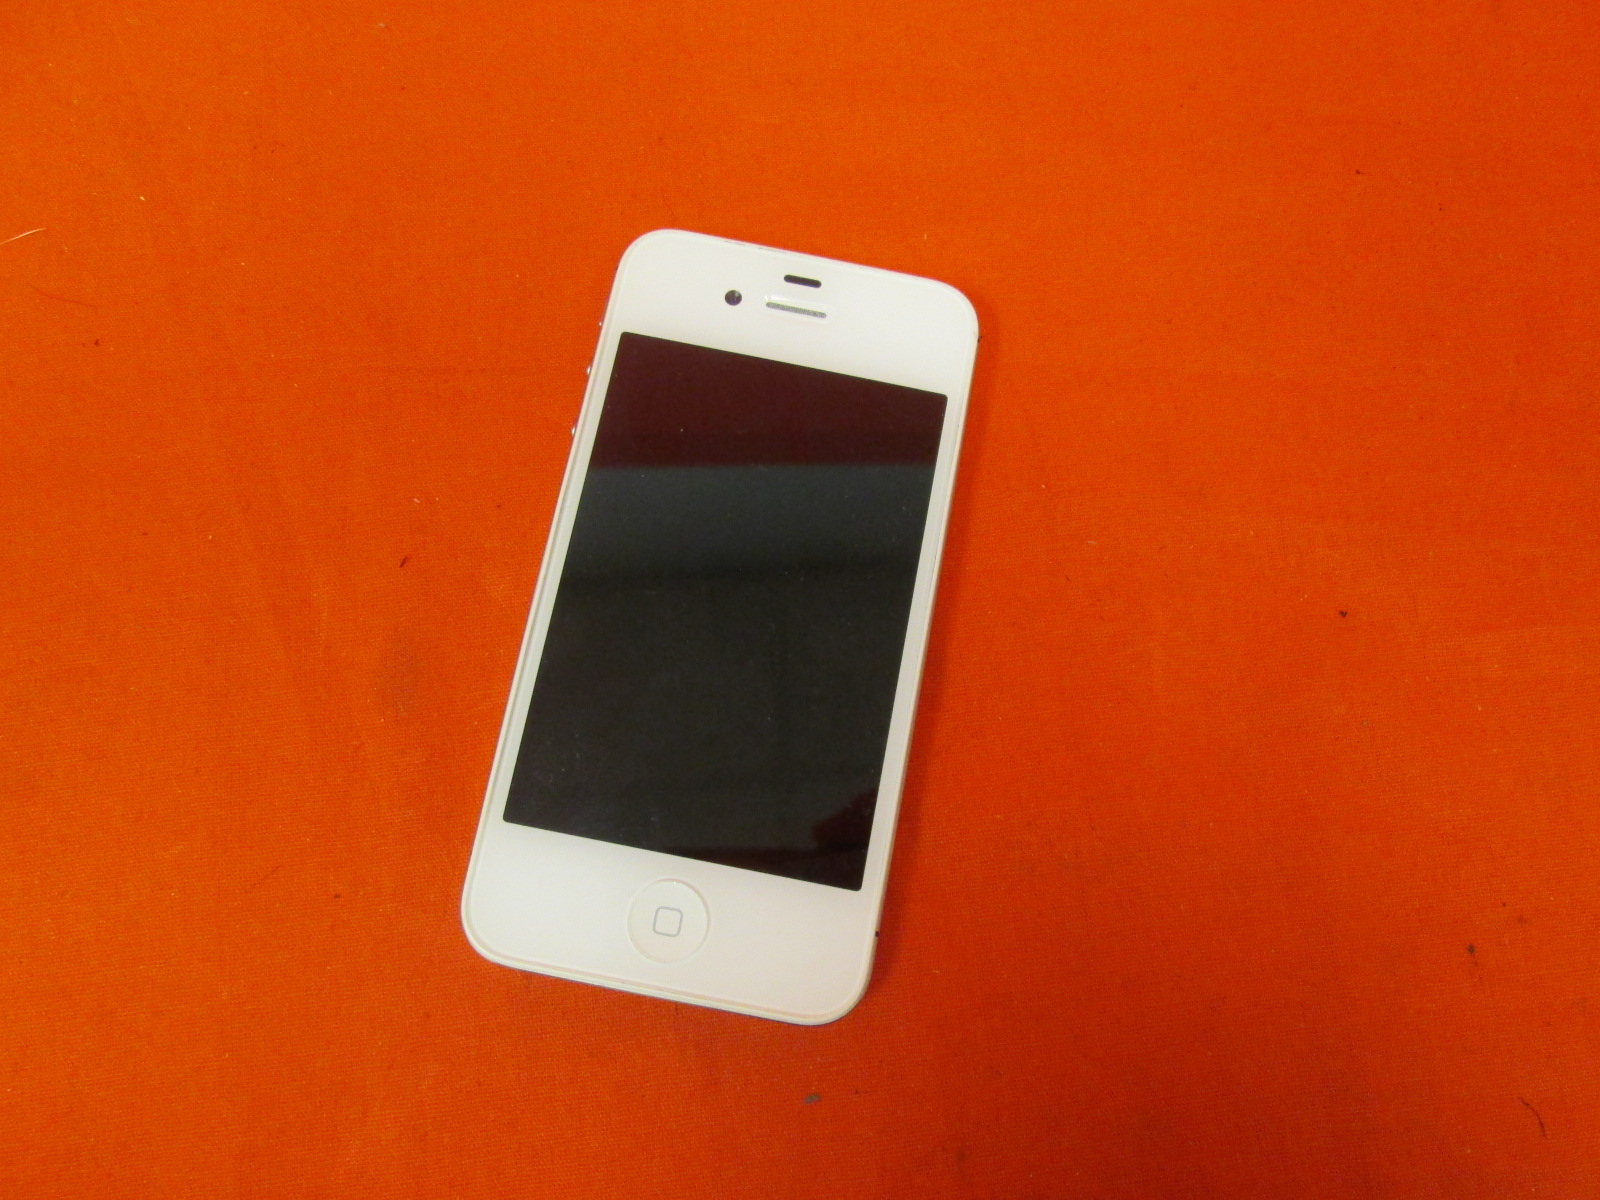 iPhone 4 A1387 Cell Phone Icloud Locked